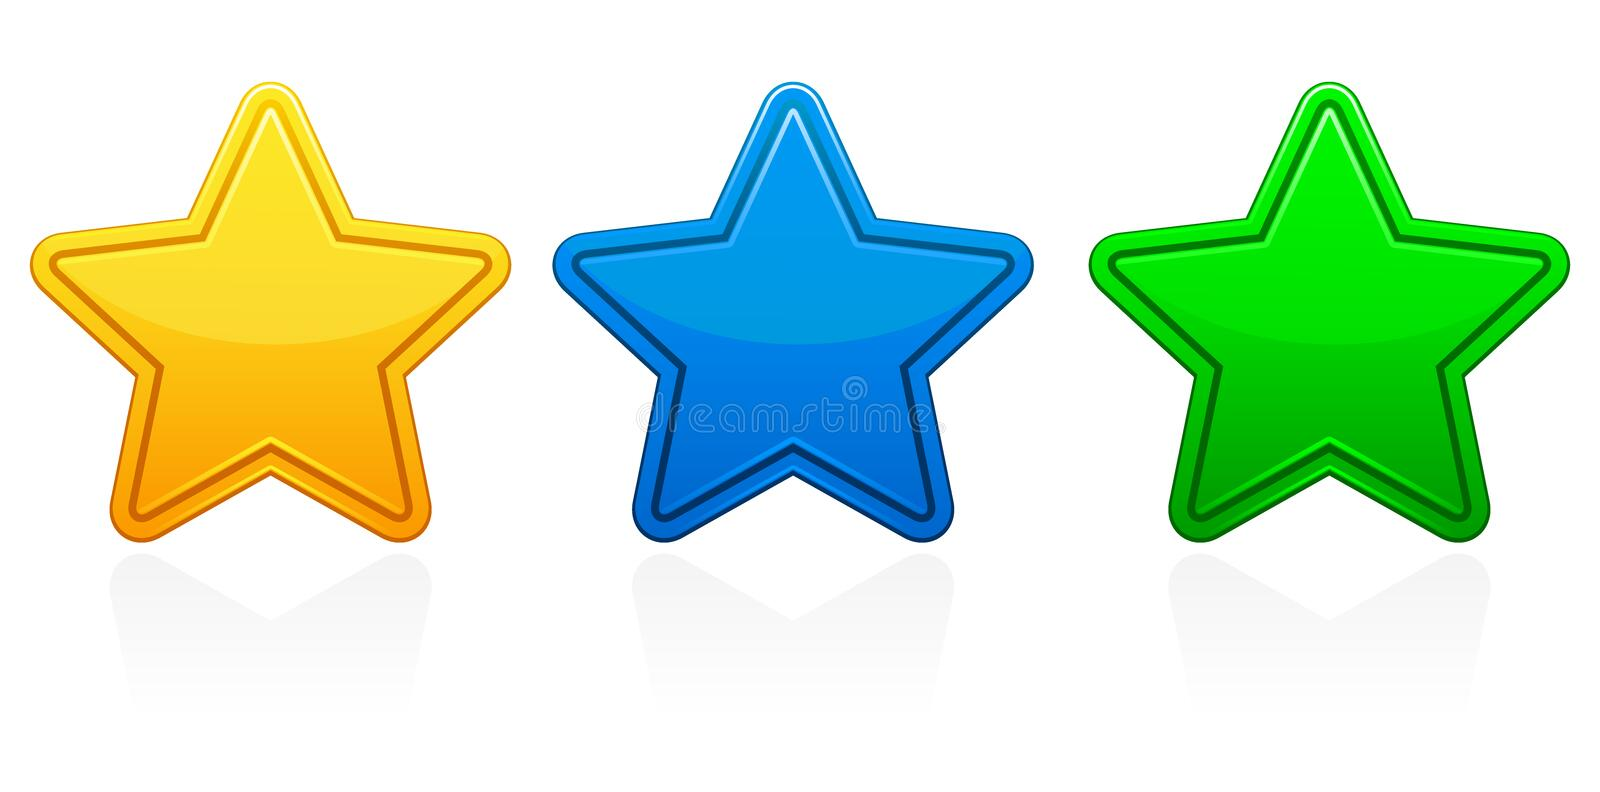 Star Icons / EPS. A group of three glossy star icons in yellow, blue and green. Also available in vector EPS